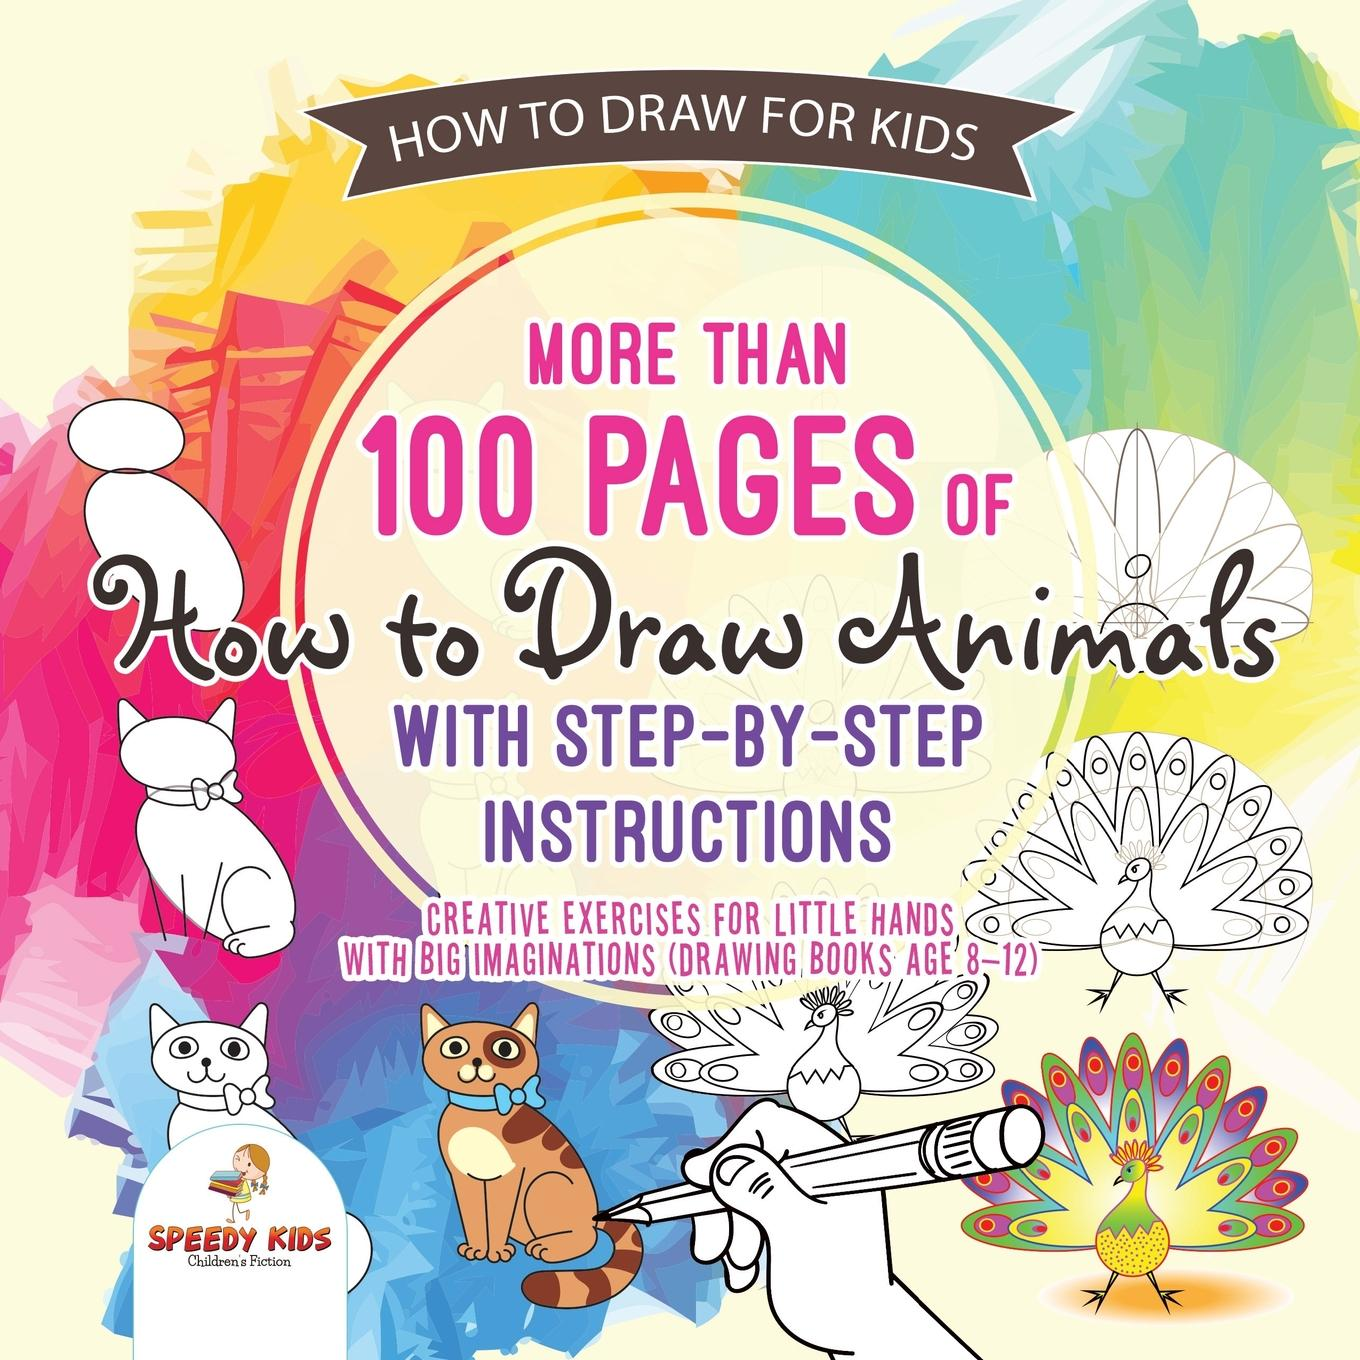 How to Draw for Kids. More Than 100 Pages of How to Draw ...